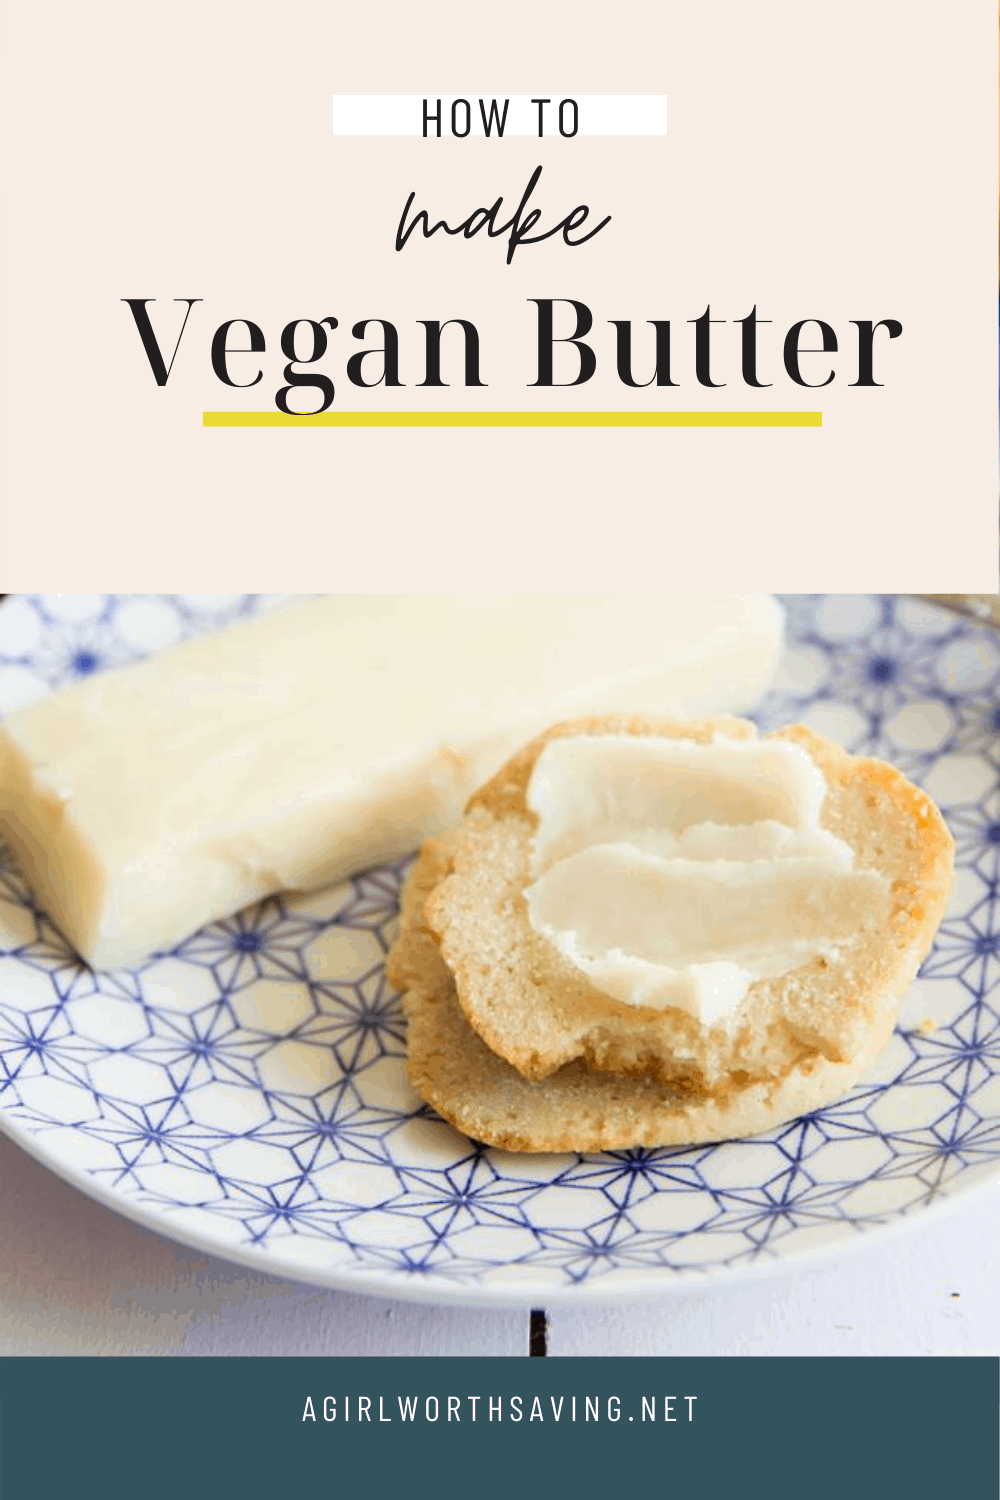 Making homemade butter was never easier. Learn how to make vegan butter that is spreadable and tastes like the butter you use to eat without any chemical ingredients found in store bought brands.